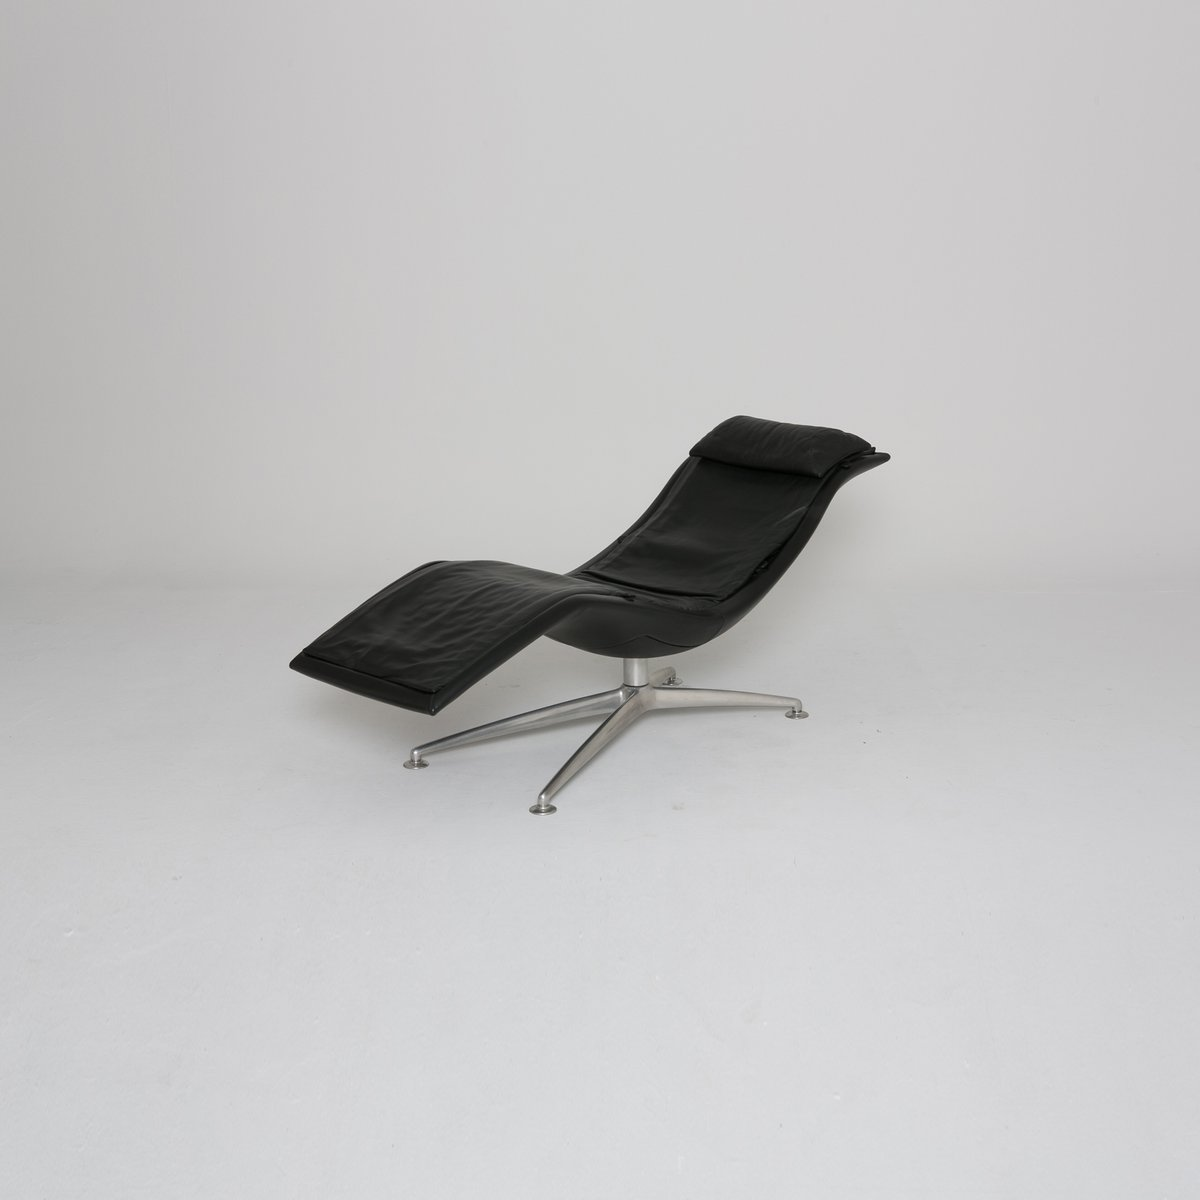 larus chaise longue from poltrona frau 2001 for sale at